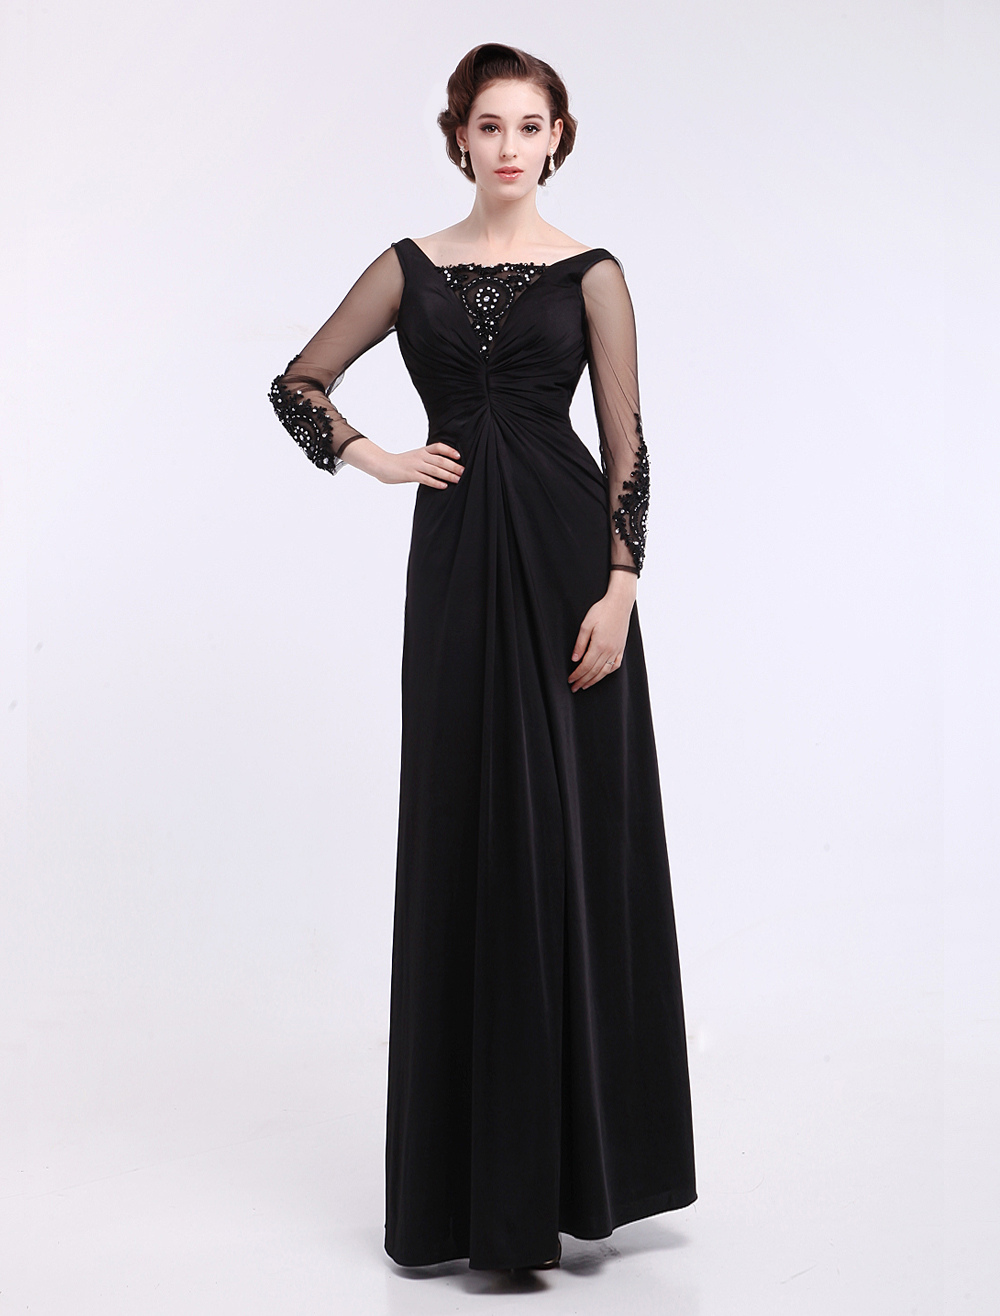 Black A-line Ruched Long Sleeves Beautiful Fashion Dress For Mother of the Bride Milanoo